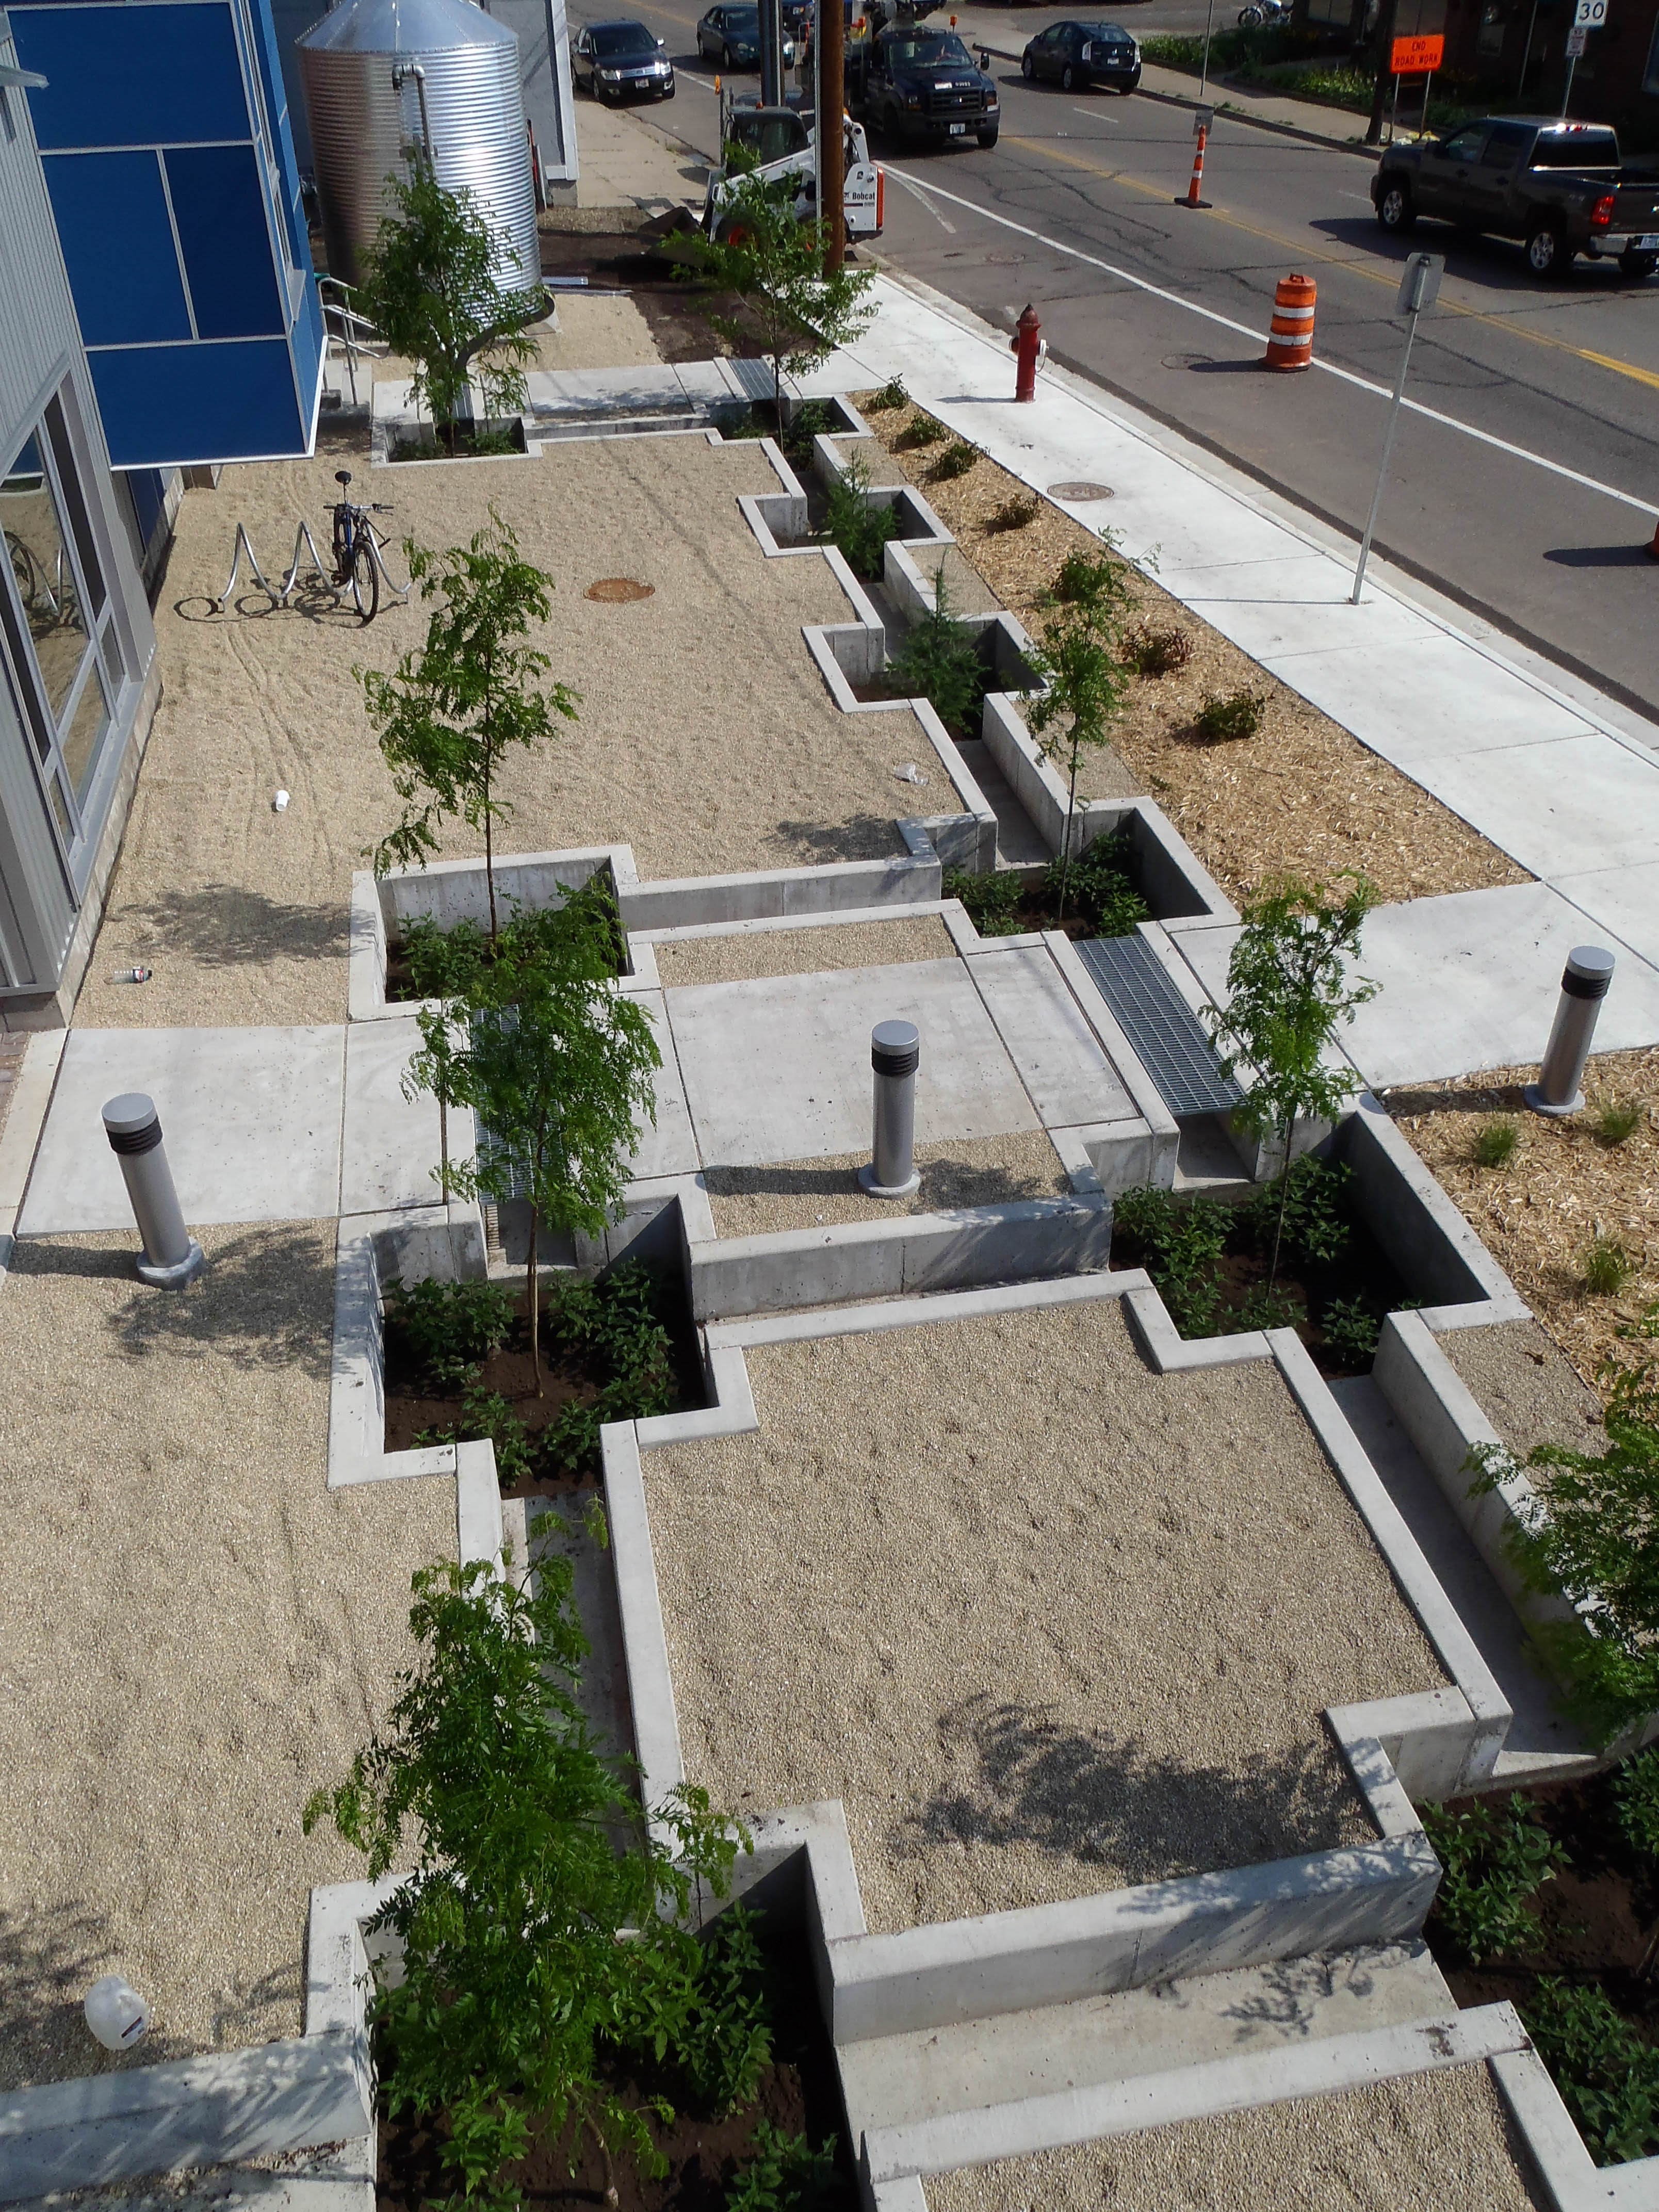 An overhead view of a tree trench and cistern at the MWMO building. Image by MWMO